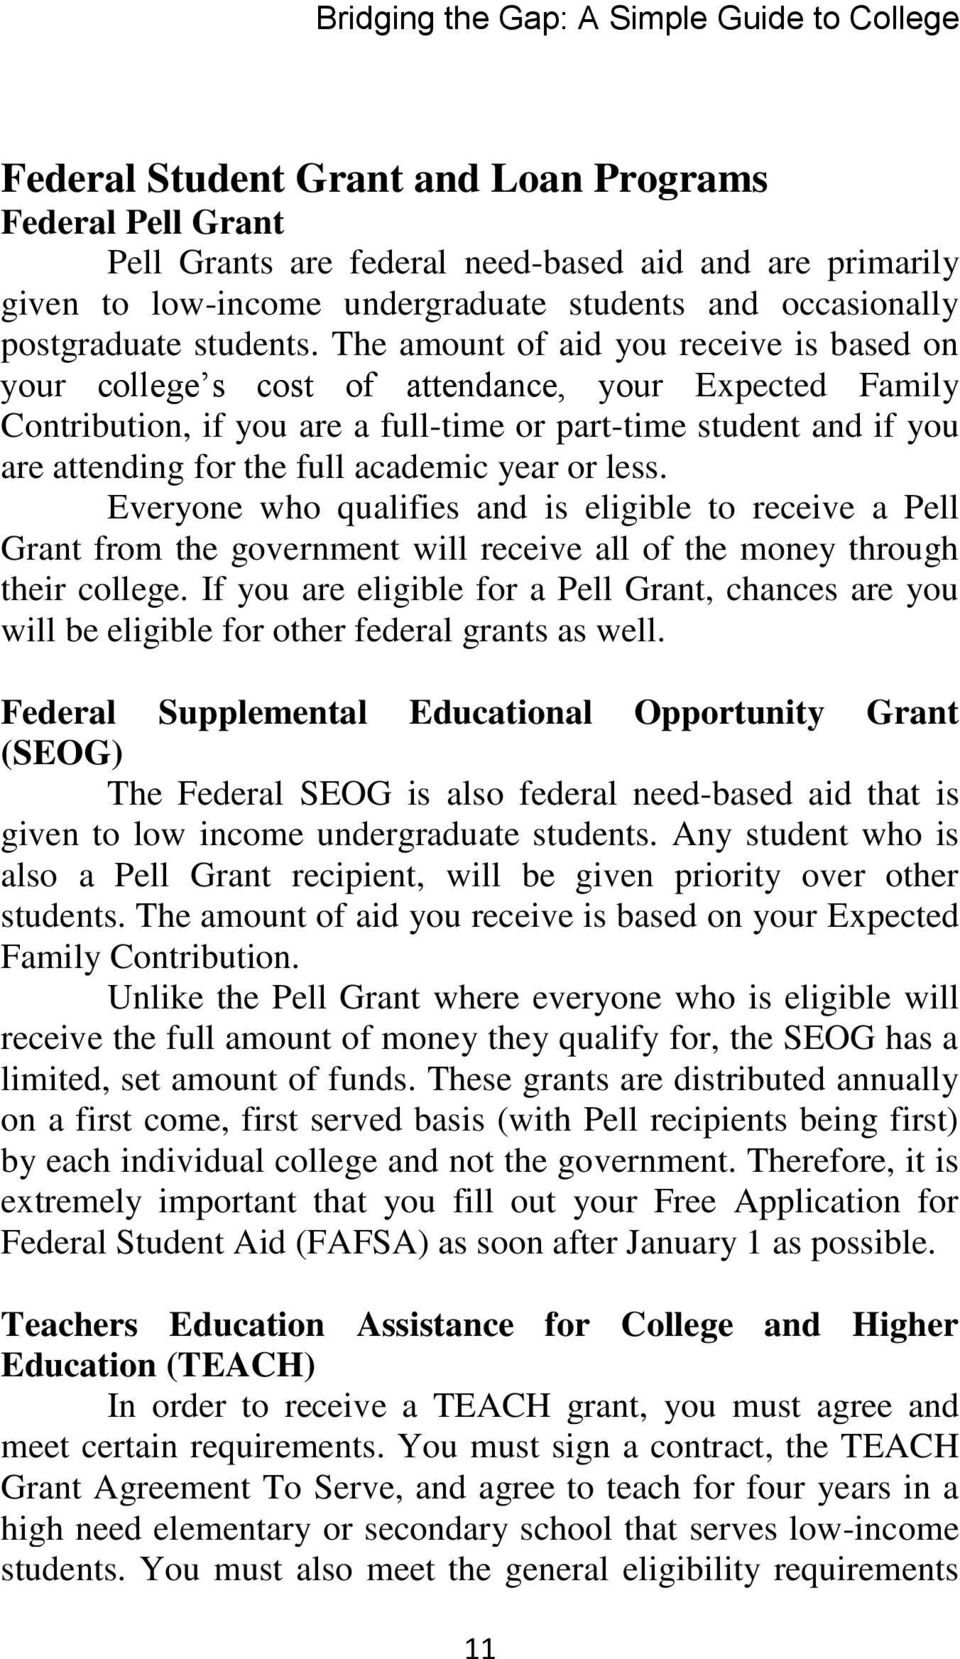 The amount of aid you receive is based on your college s cost of attendance, your Expected Family Contribution, if you are a full-time or part-time student and if you are attending for the full